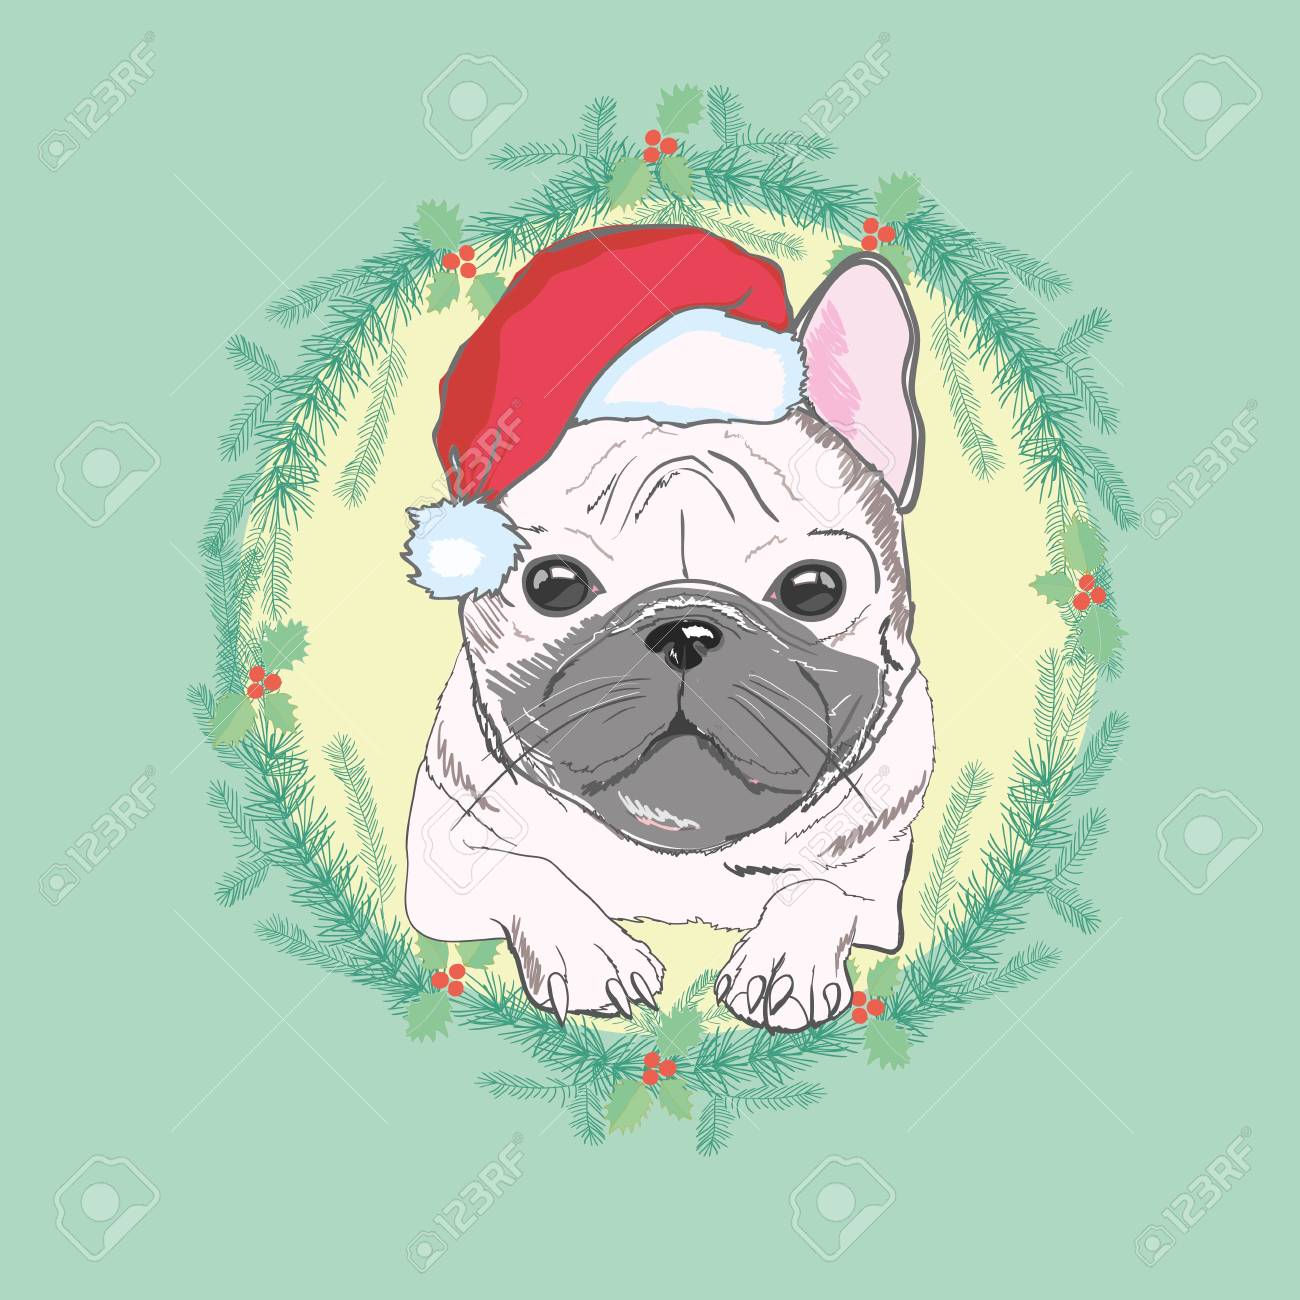 ae36360412c Christmas Greeting Card. Pug Dog With Red Santa S Hat.